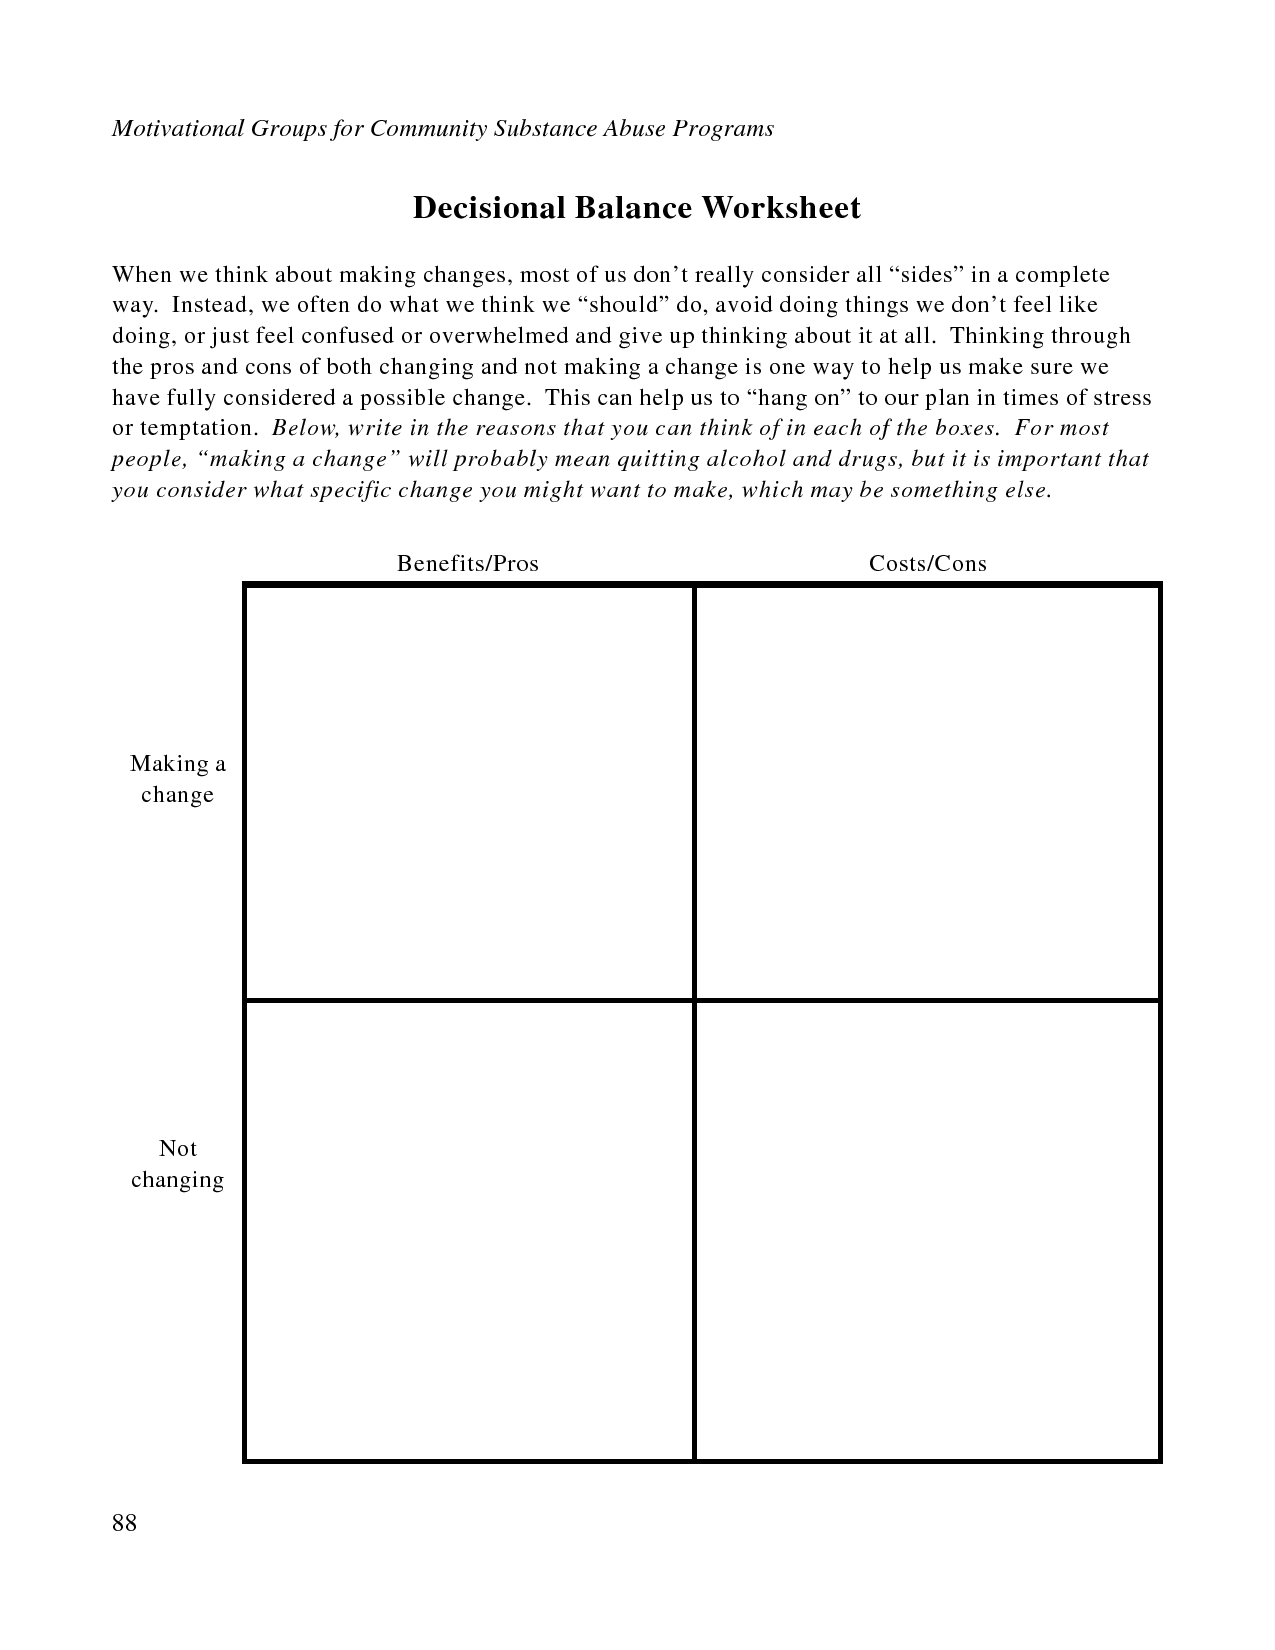 free printable dbt worksheets – Dbt Worksheets